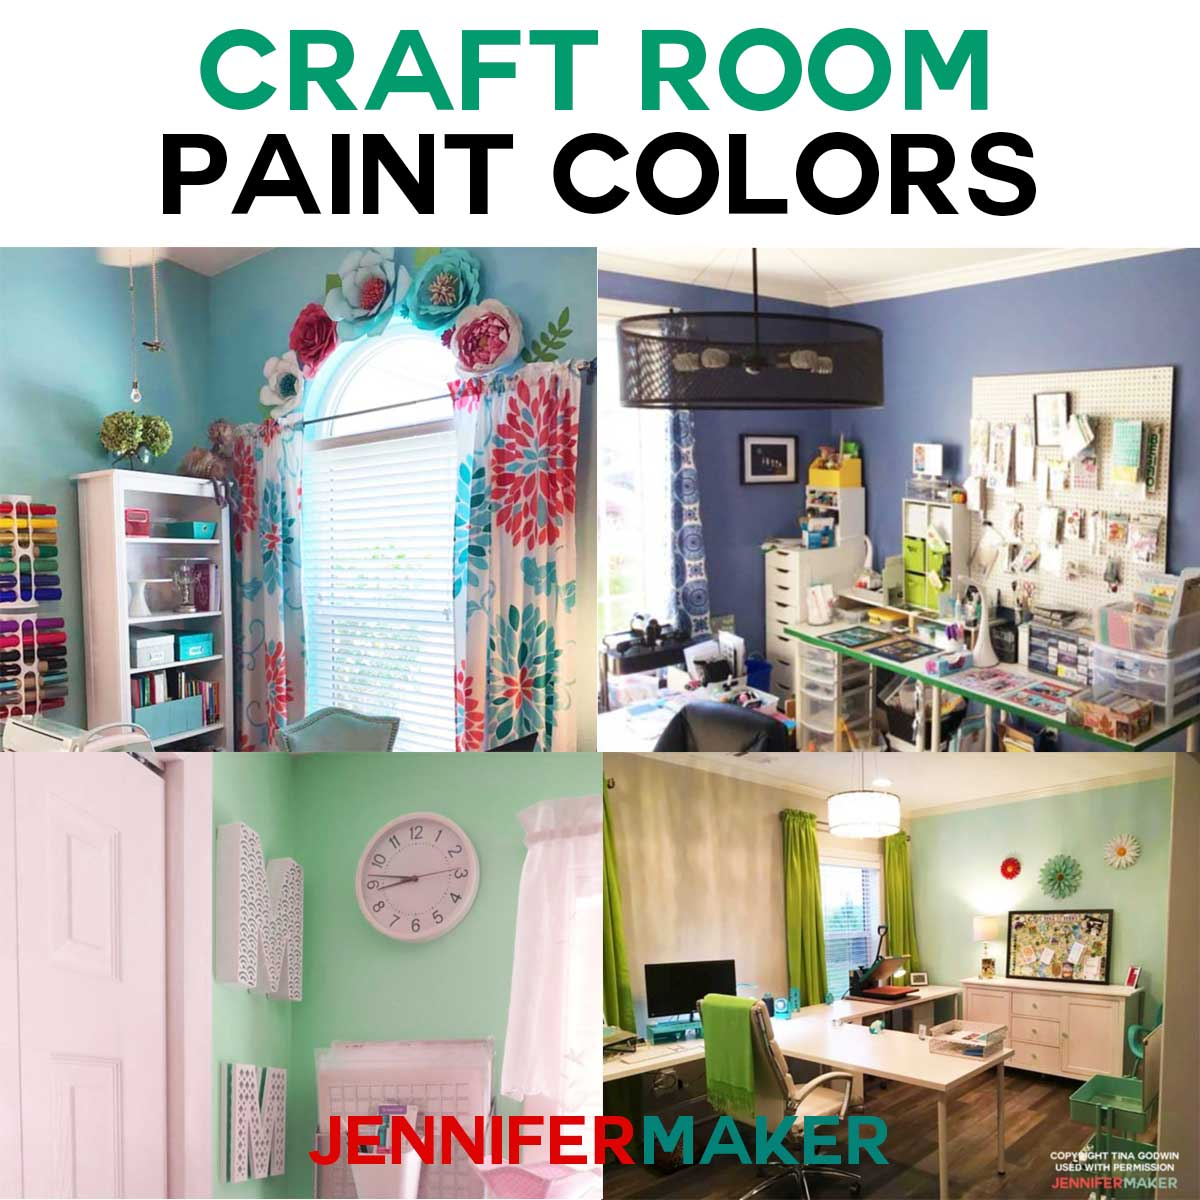 Paint Colors That Flow From Room To Room Craft Room Paint Colors Ideas Jennifer Maker